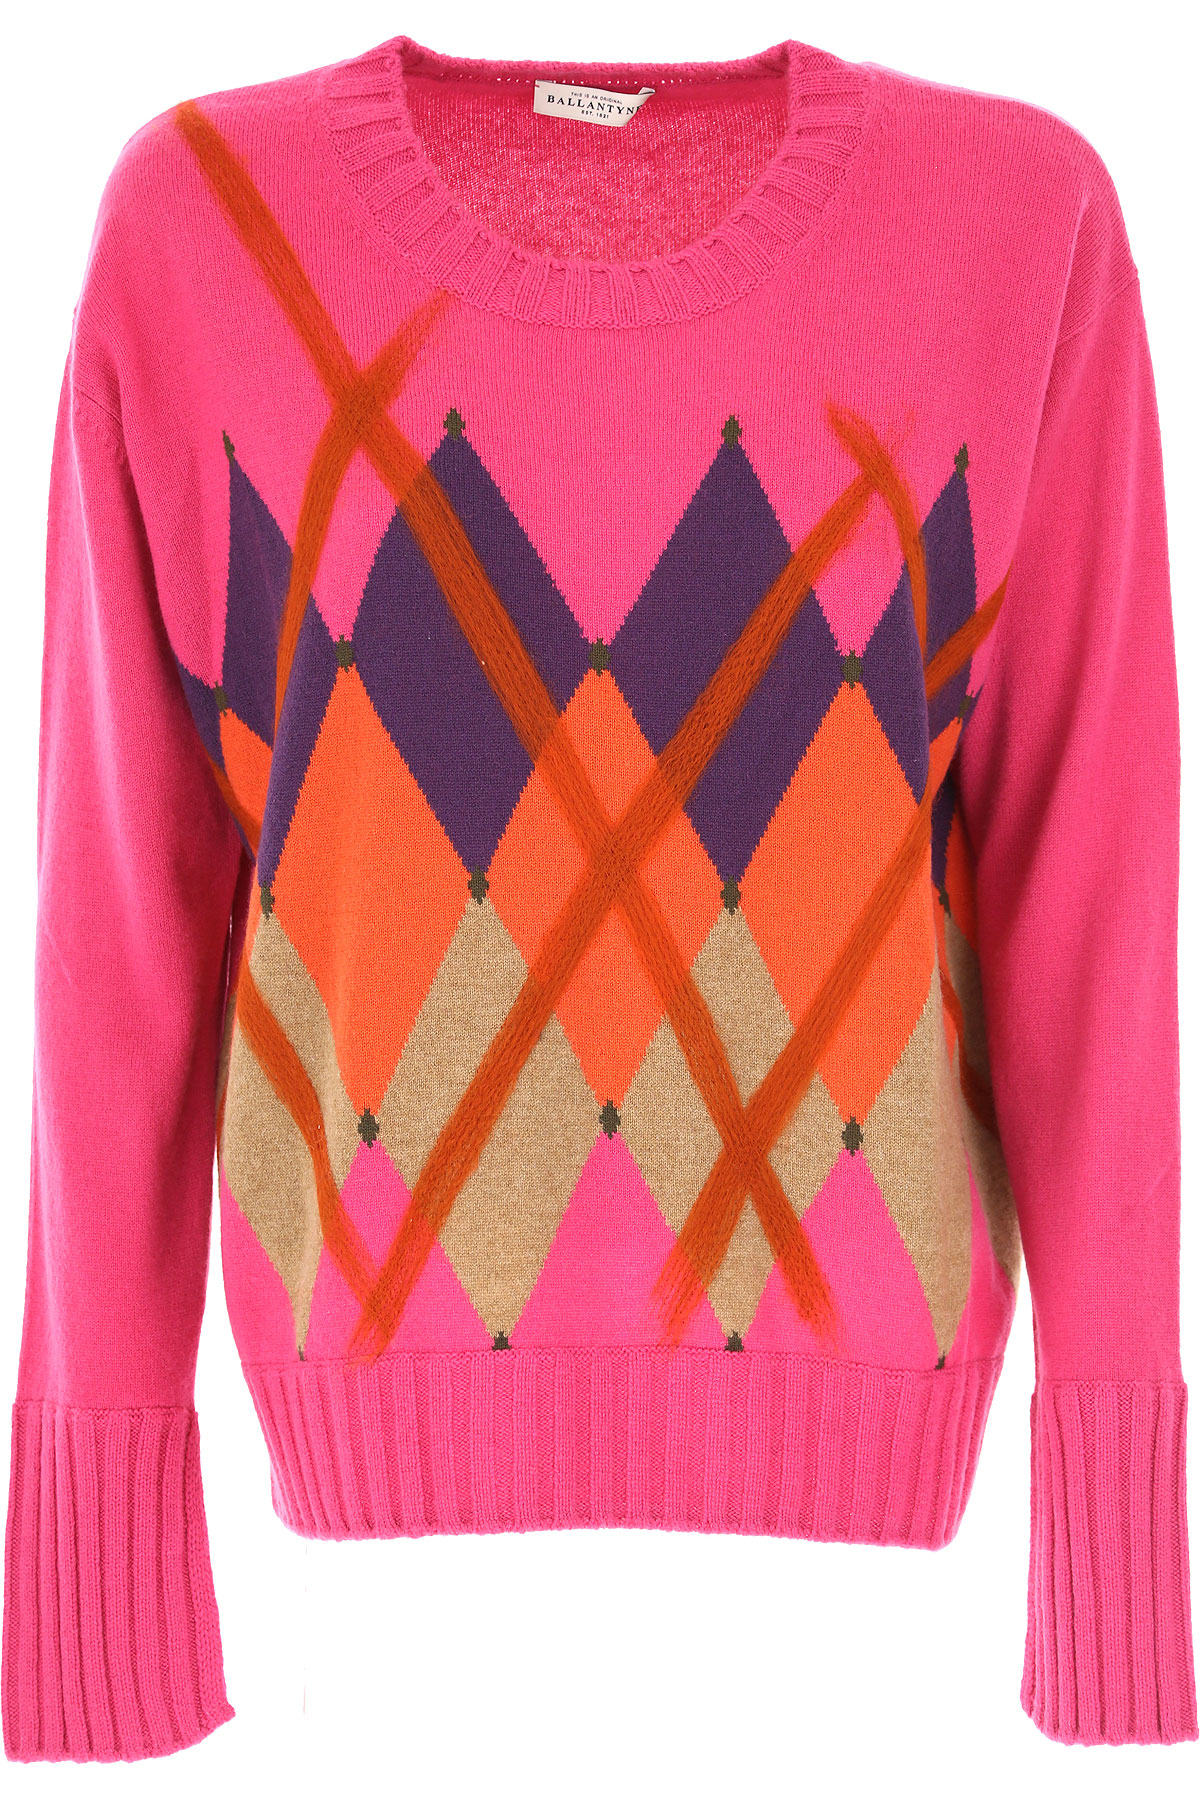 Image of Ballantyne Sweater for Women Jumper, fuxia, Cashmere, 2017, 10 6 8